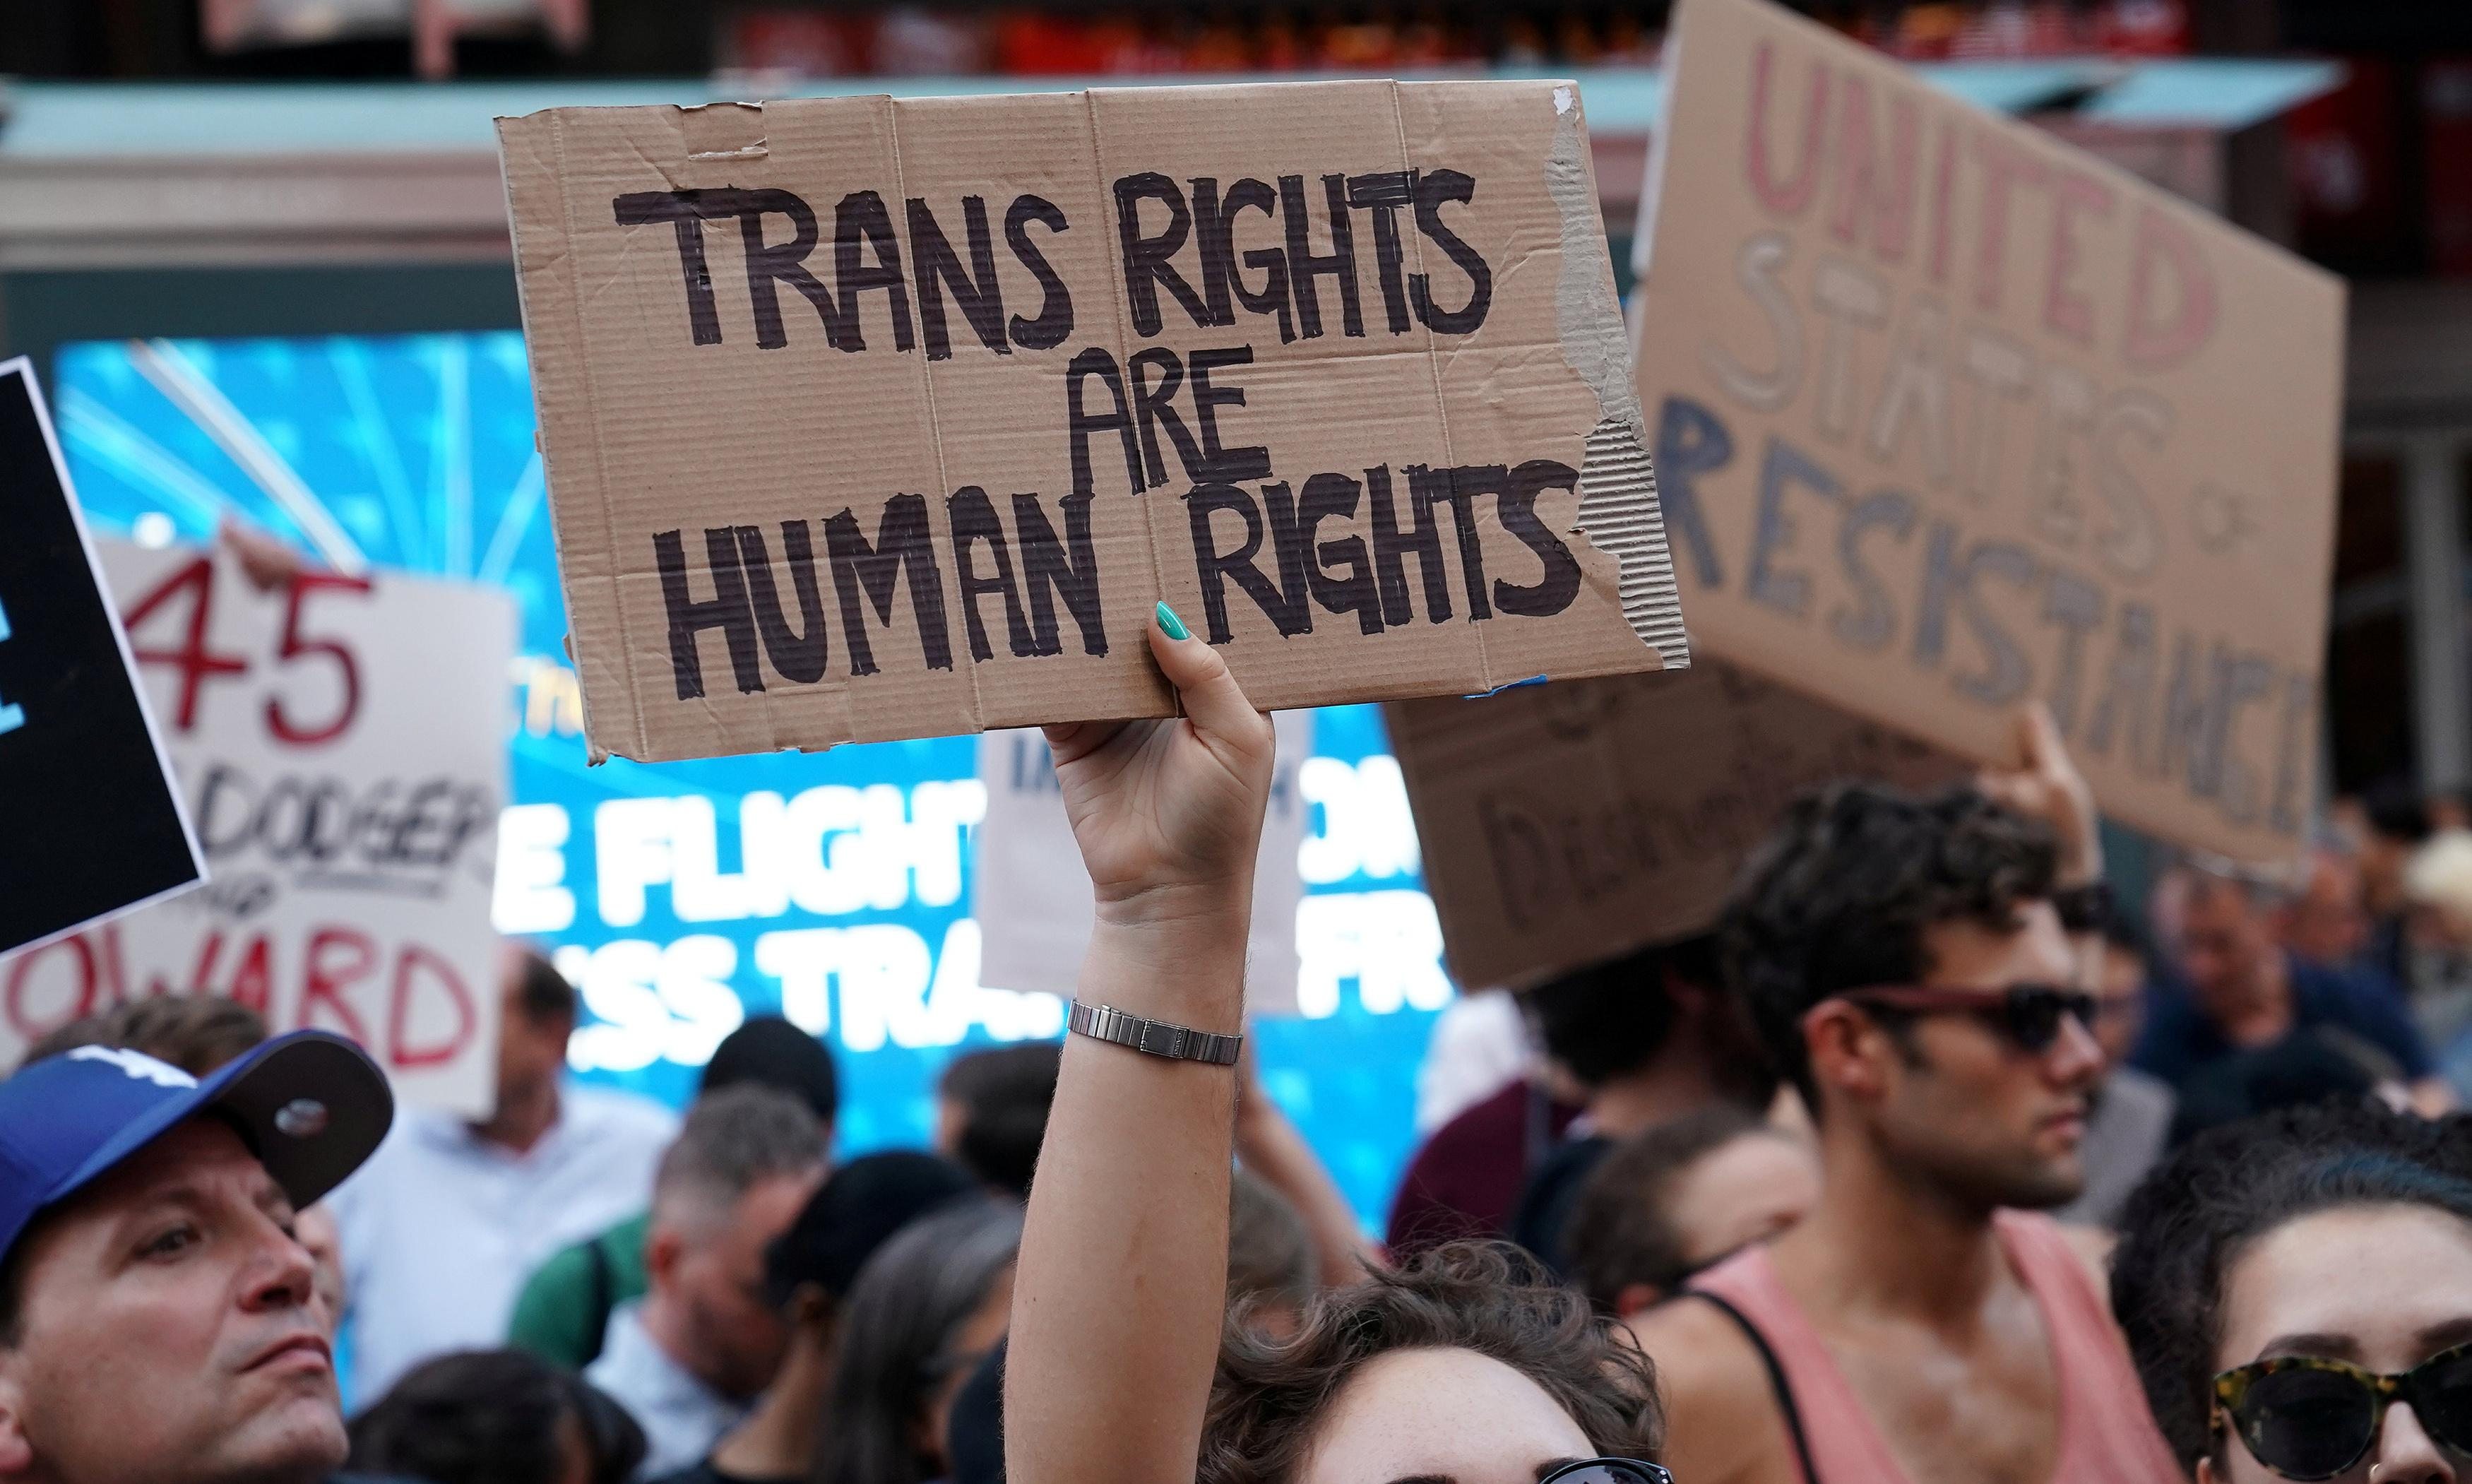 Authoritarians like Trump target trans people for a reason